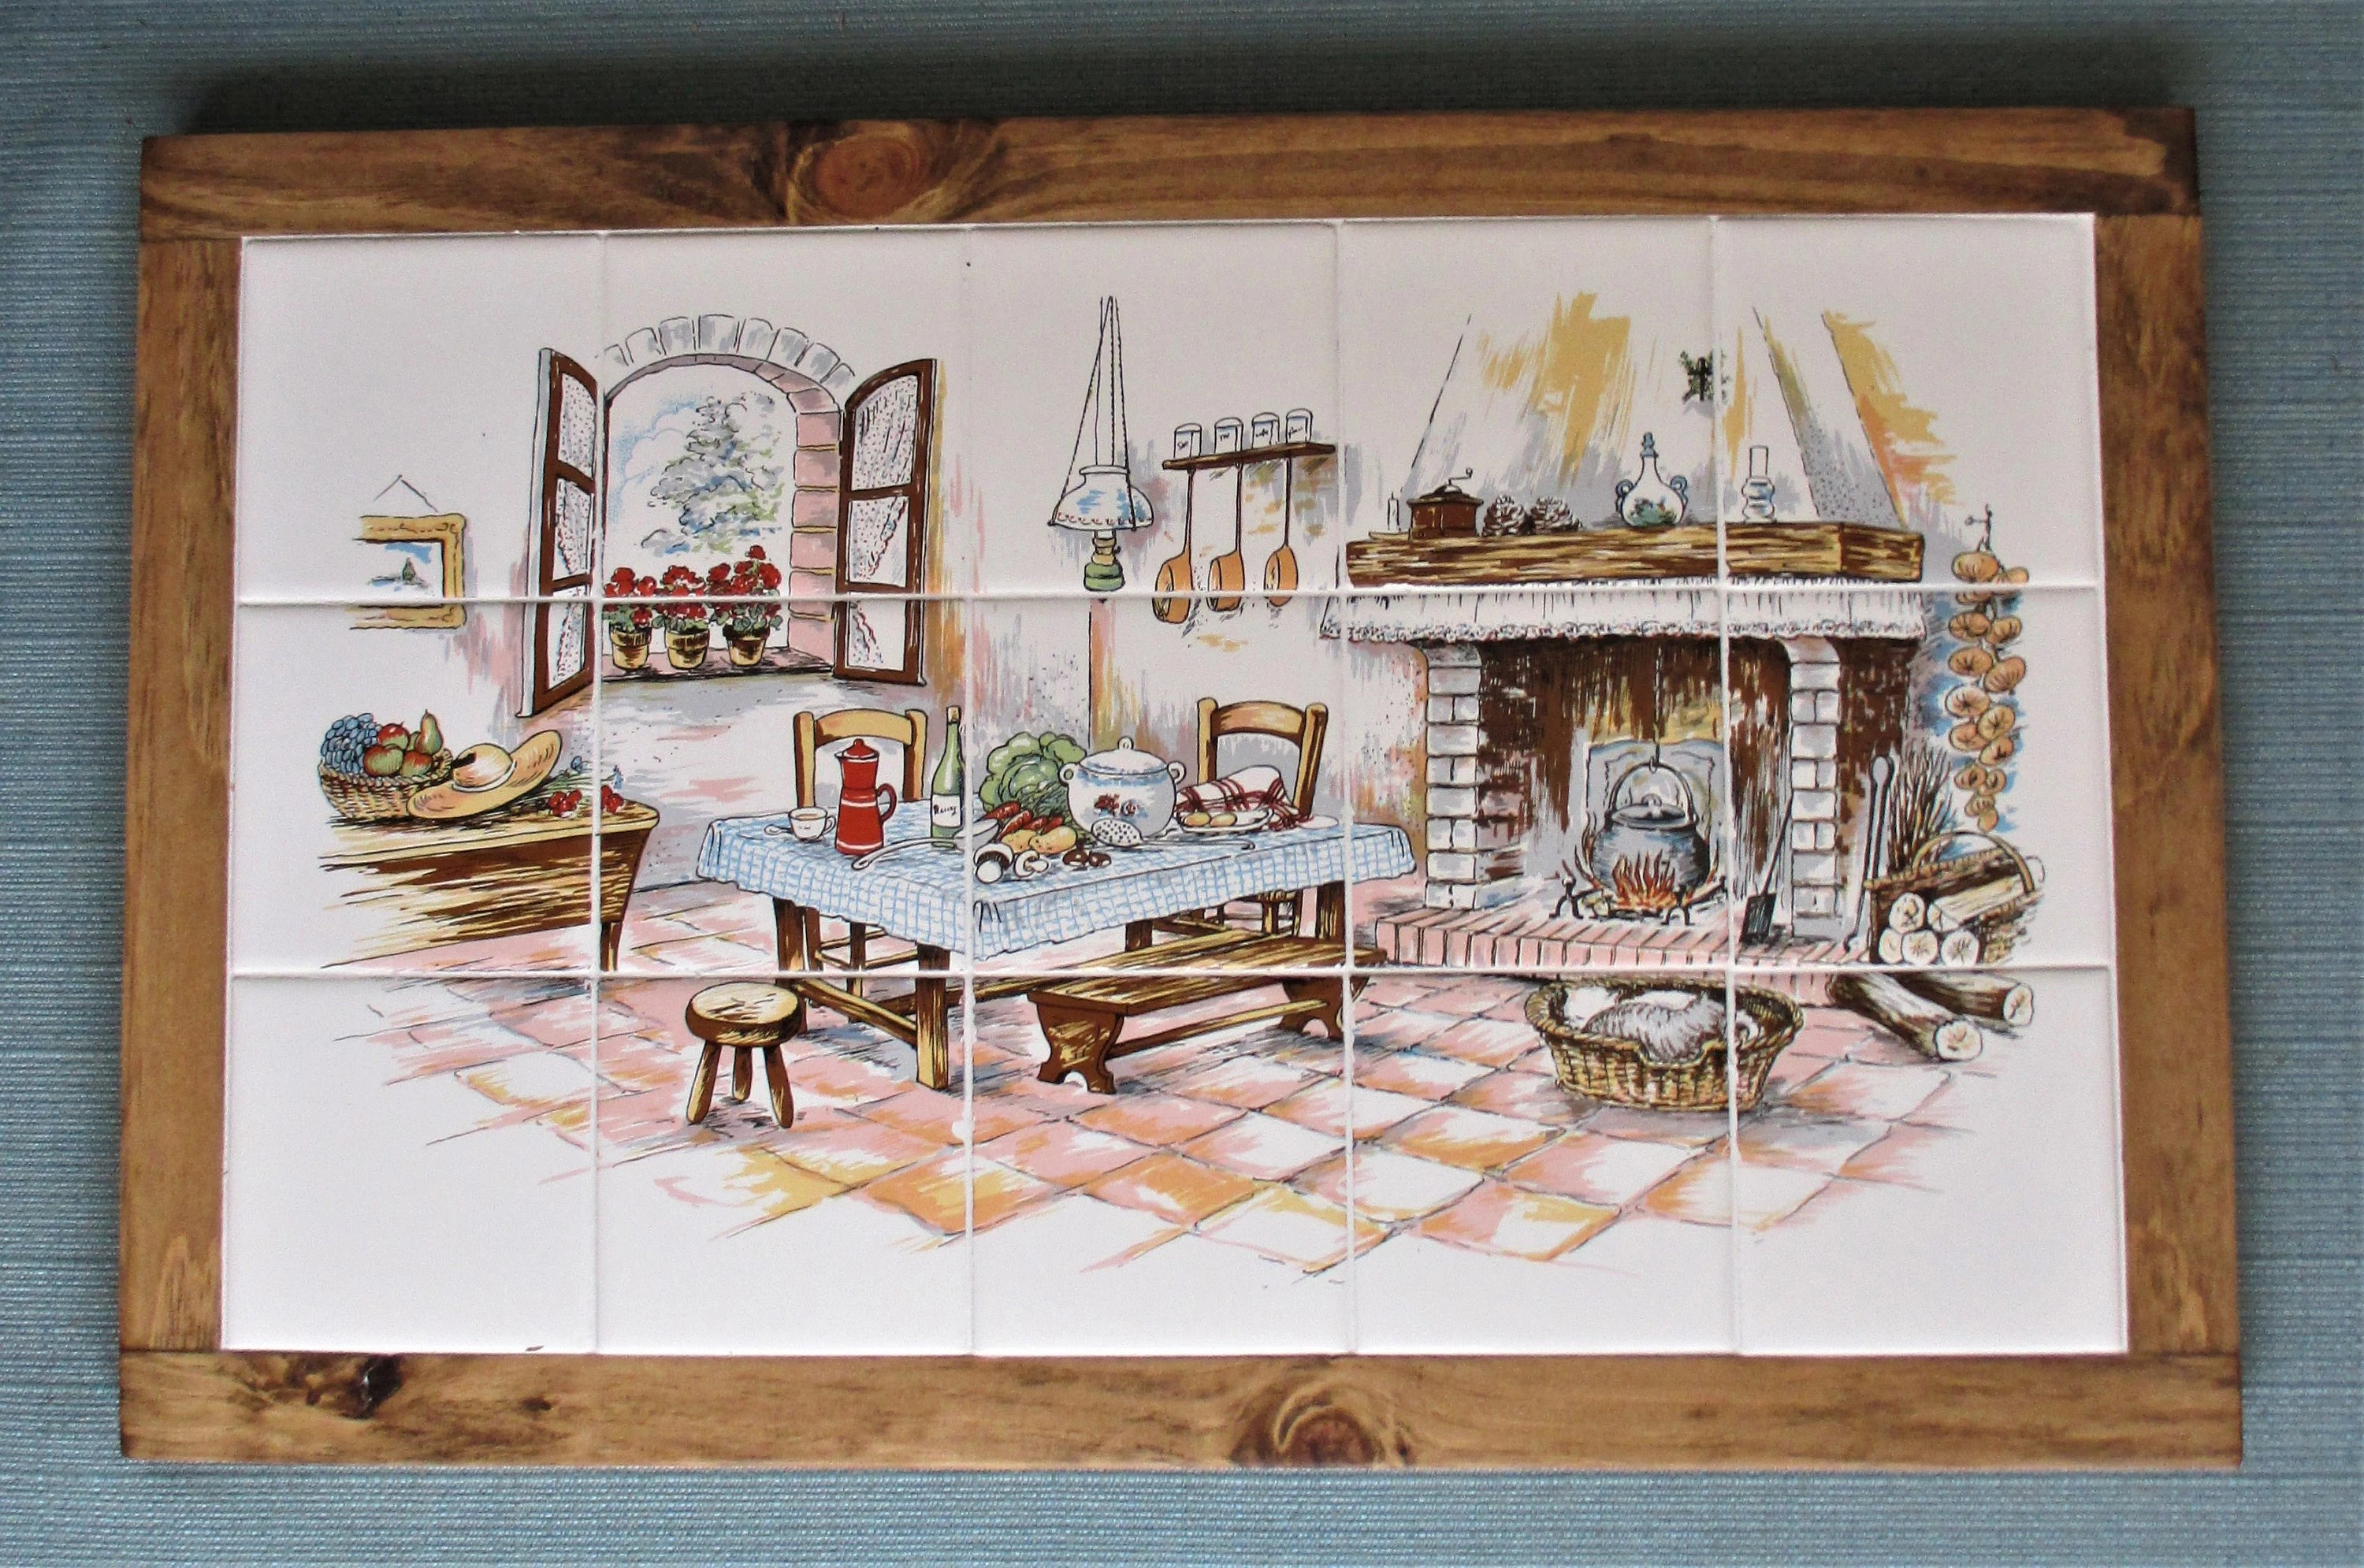 country kitchenframed tile mural mural wall hanging etsy